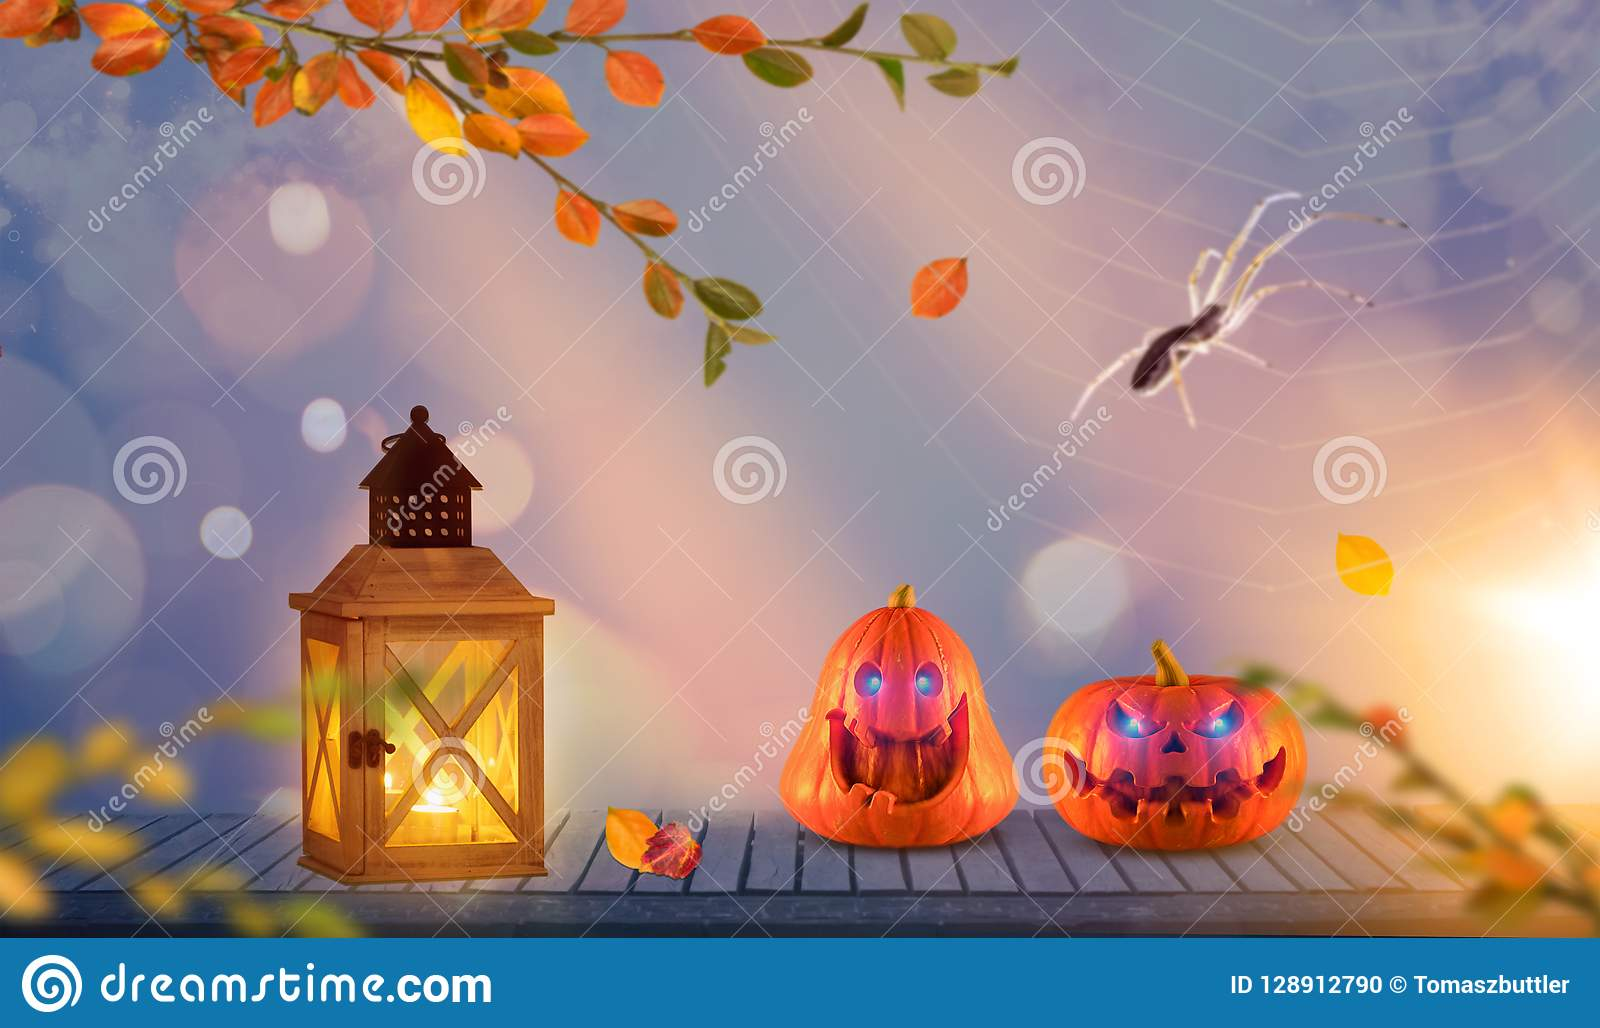 two funny scary orange halloween pumpkins with glowing eyes onh wood